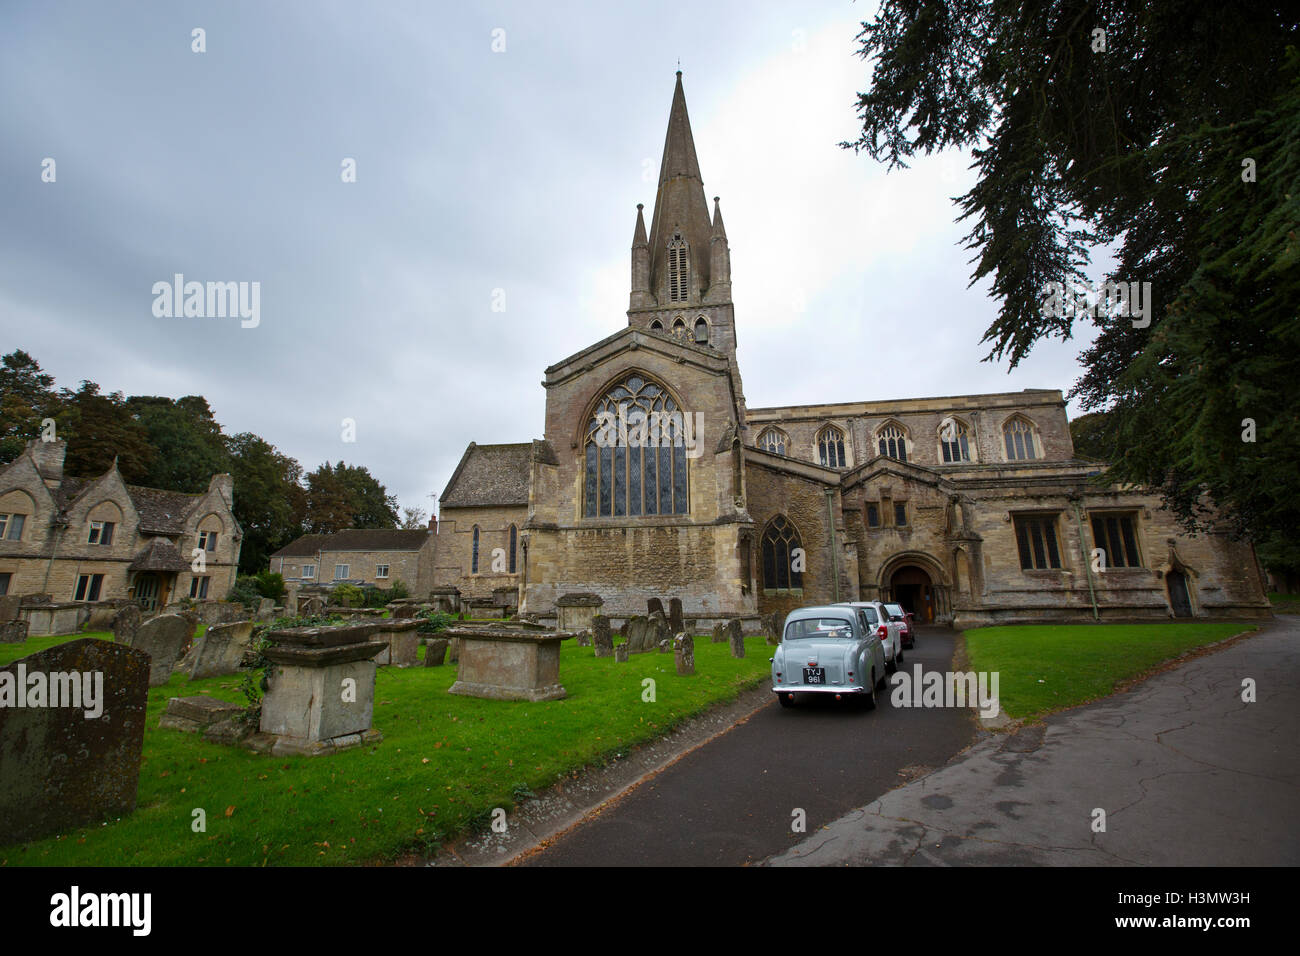 St Mary's Church, Witney, West Oxfordshire, Cotswolds, England, United Kingdom - Stock Image